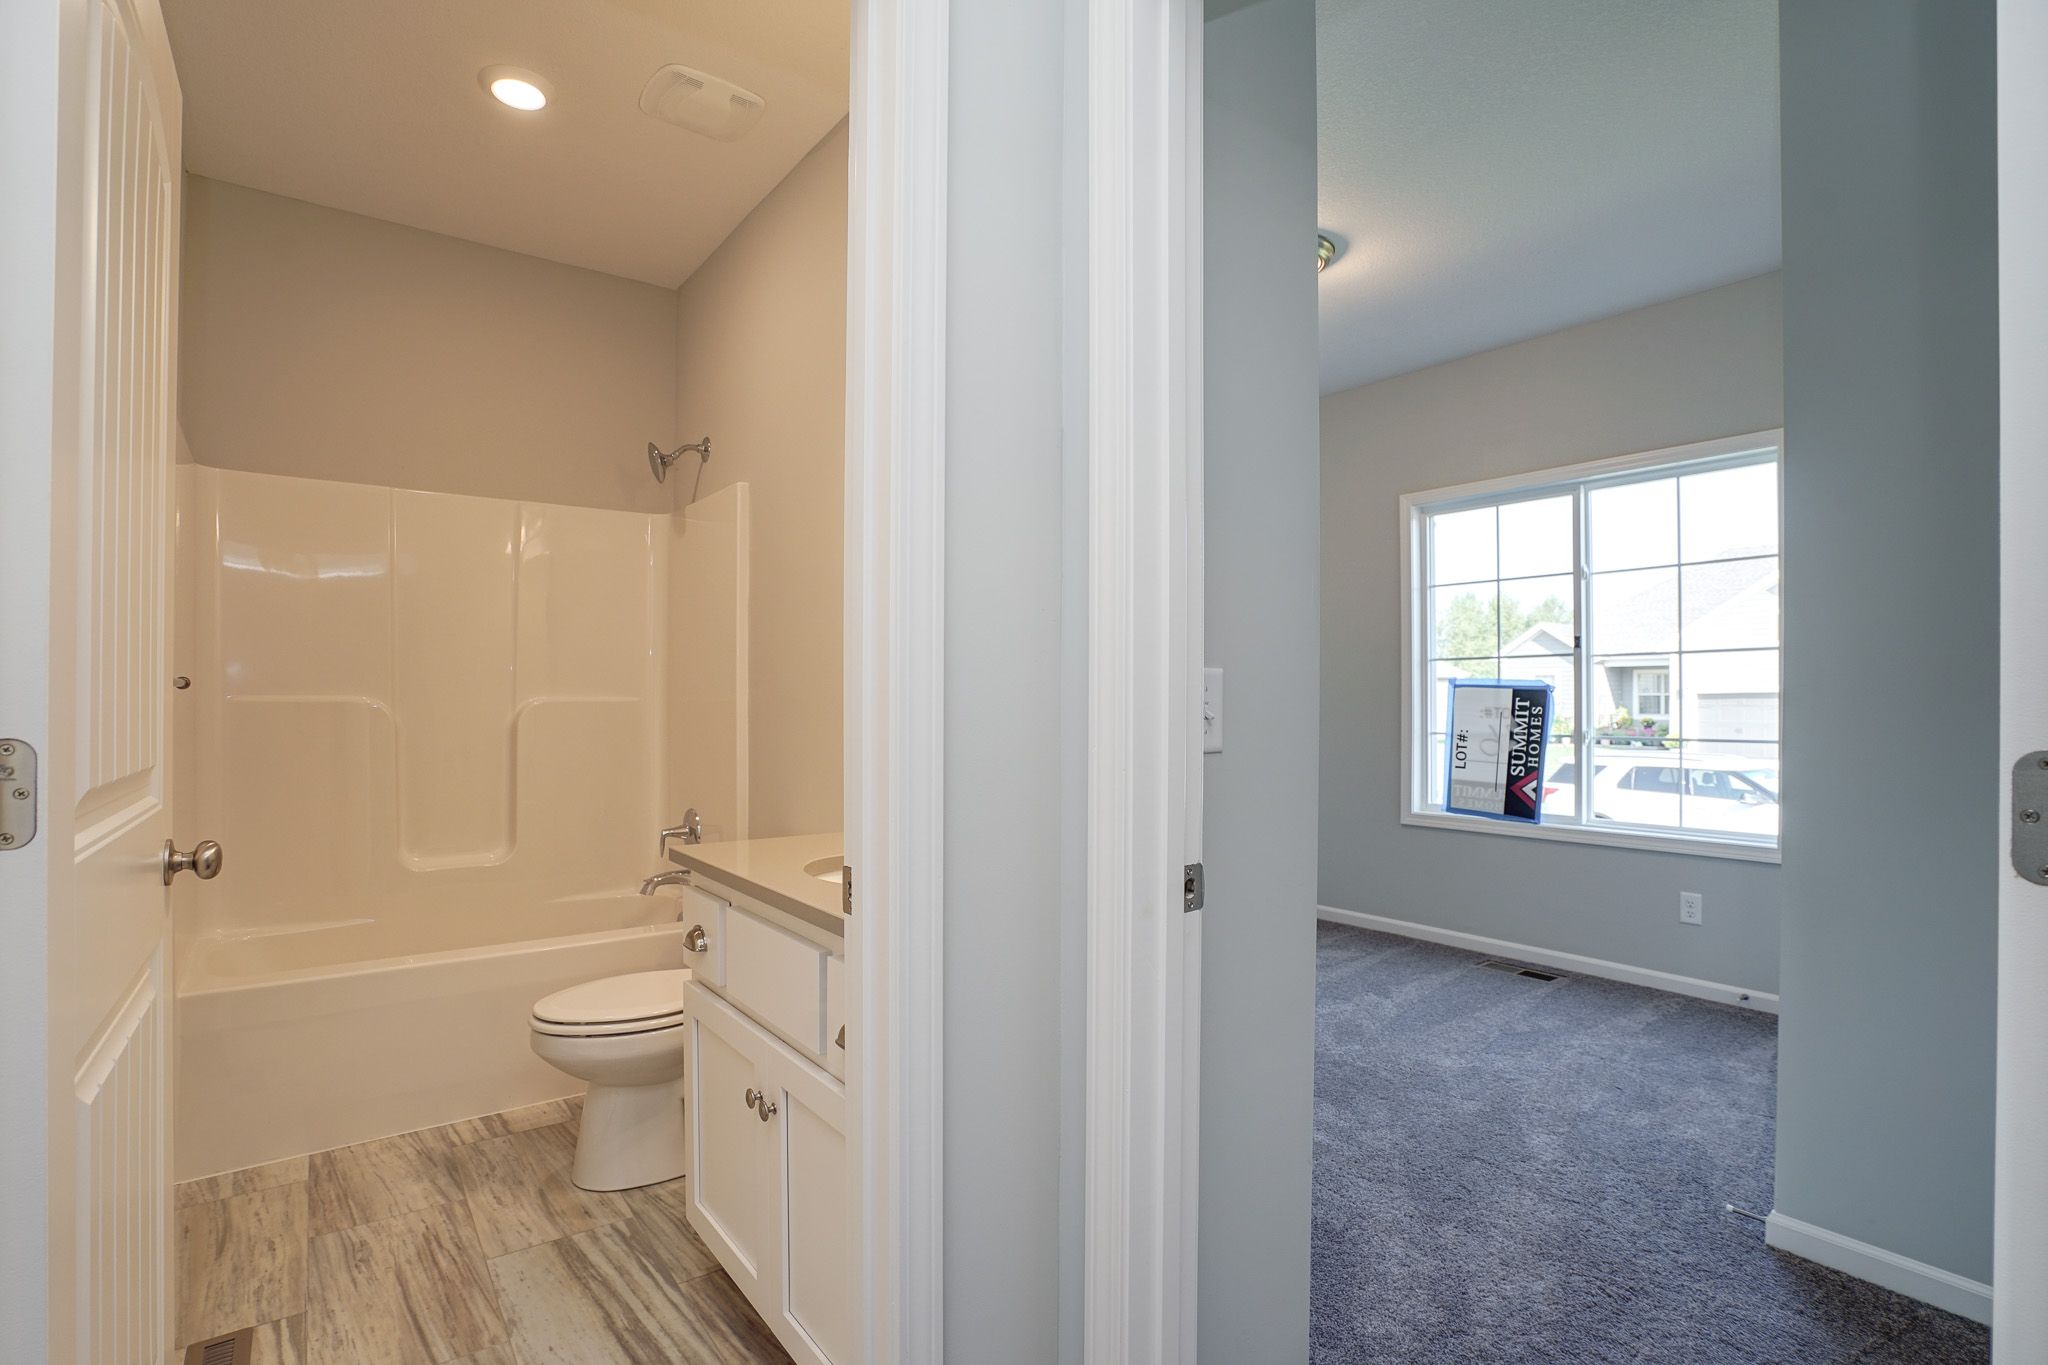 Bathroom featured in the Westport By Summit Homes in Kansas City, MO